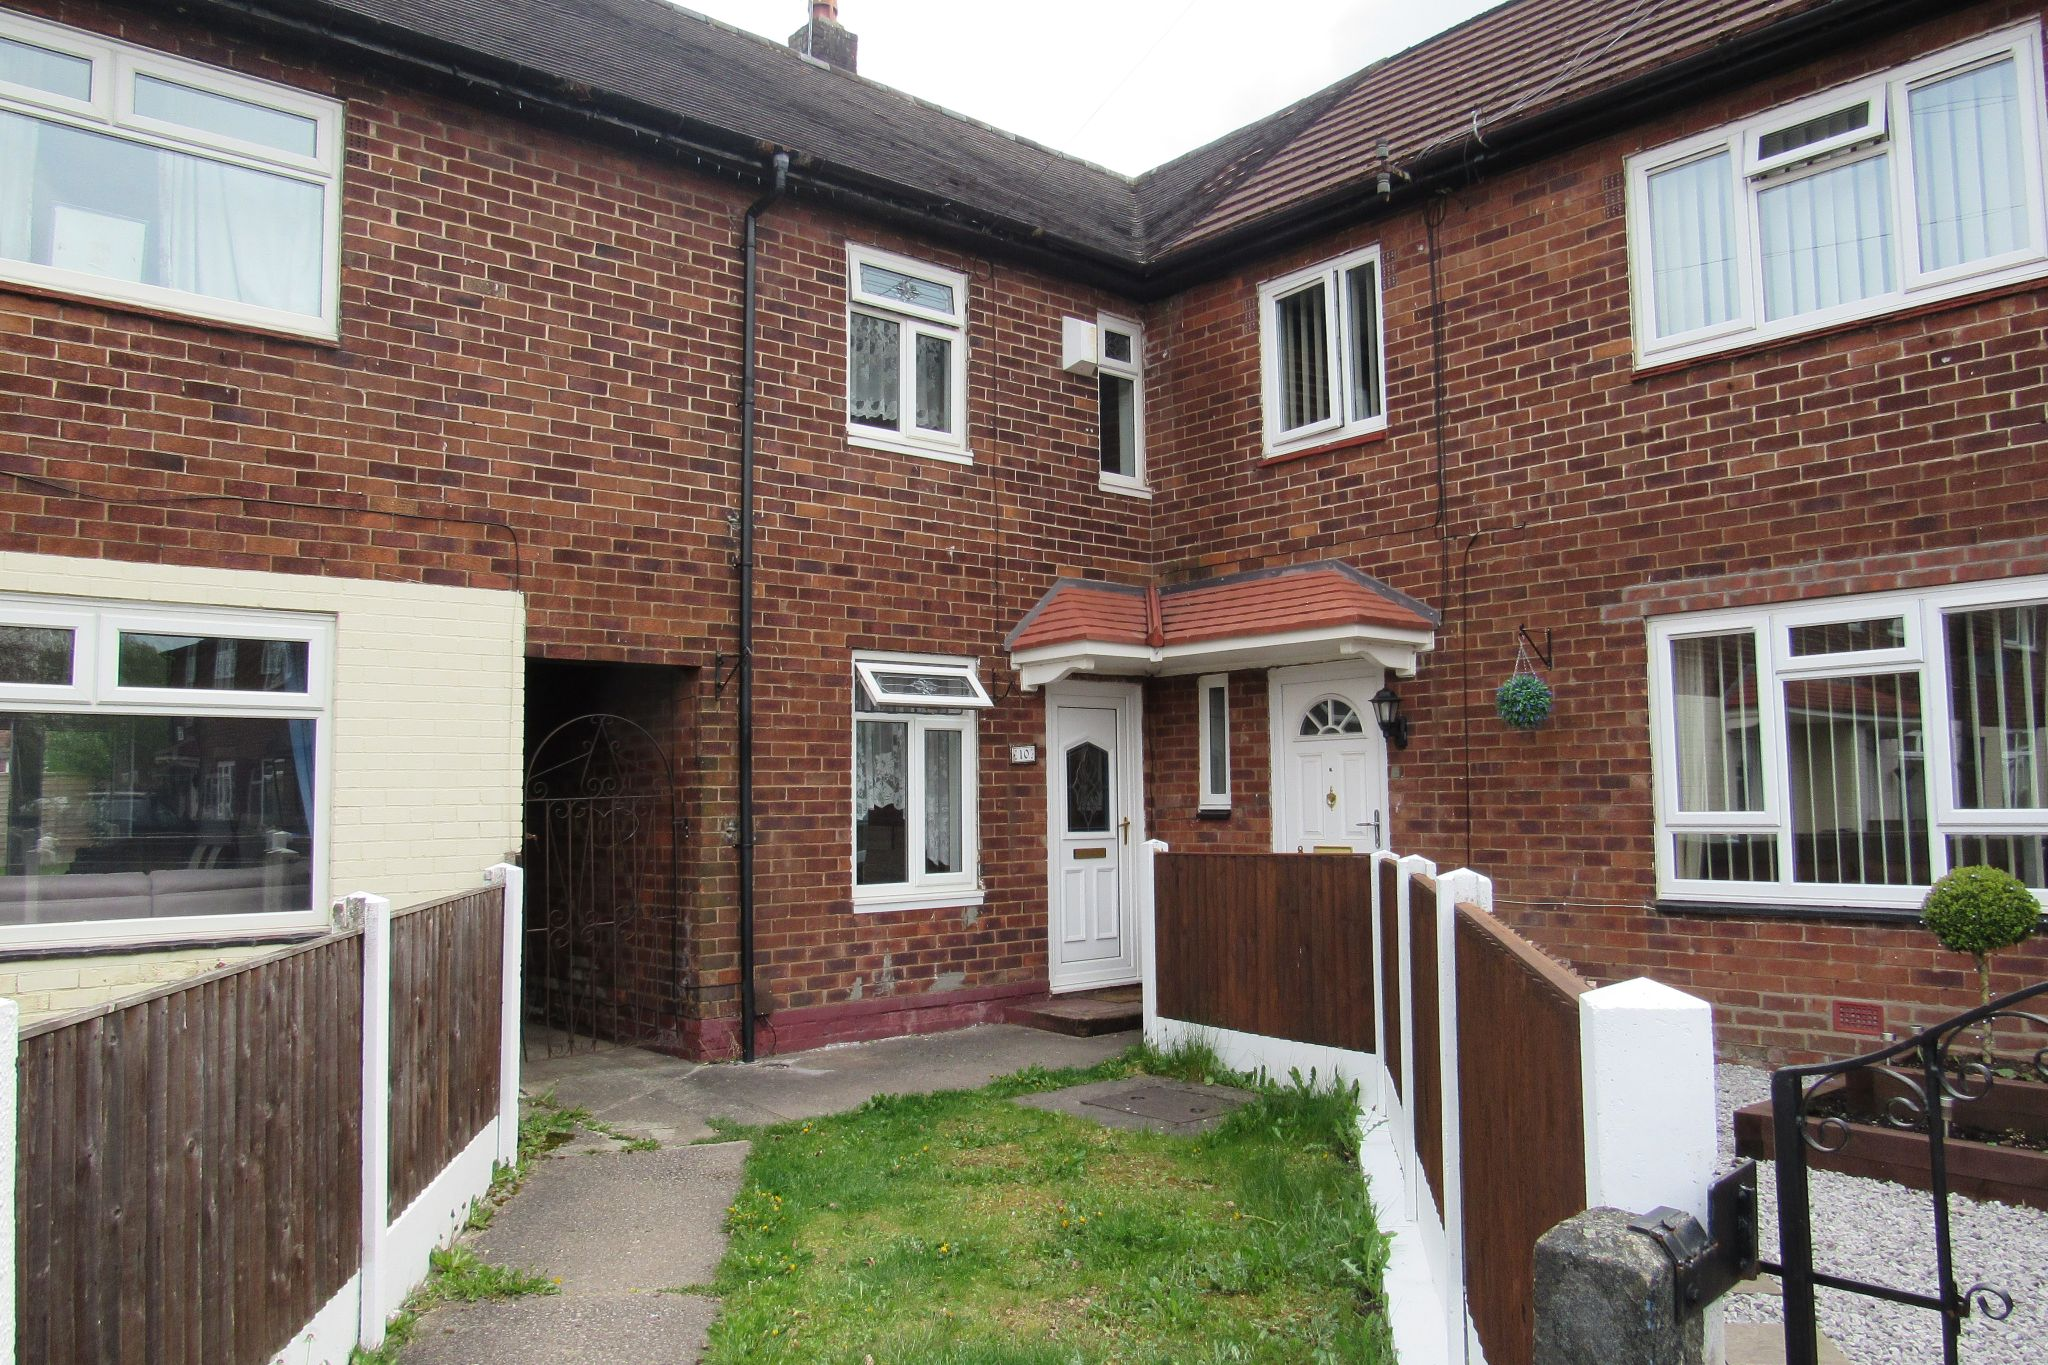 3 bedroom mid terraced house Sale Agreed in Manchester - Photograph 1.